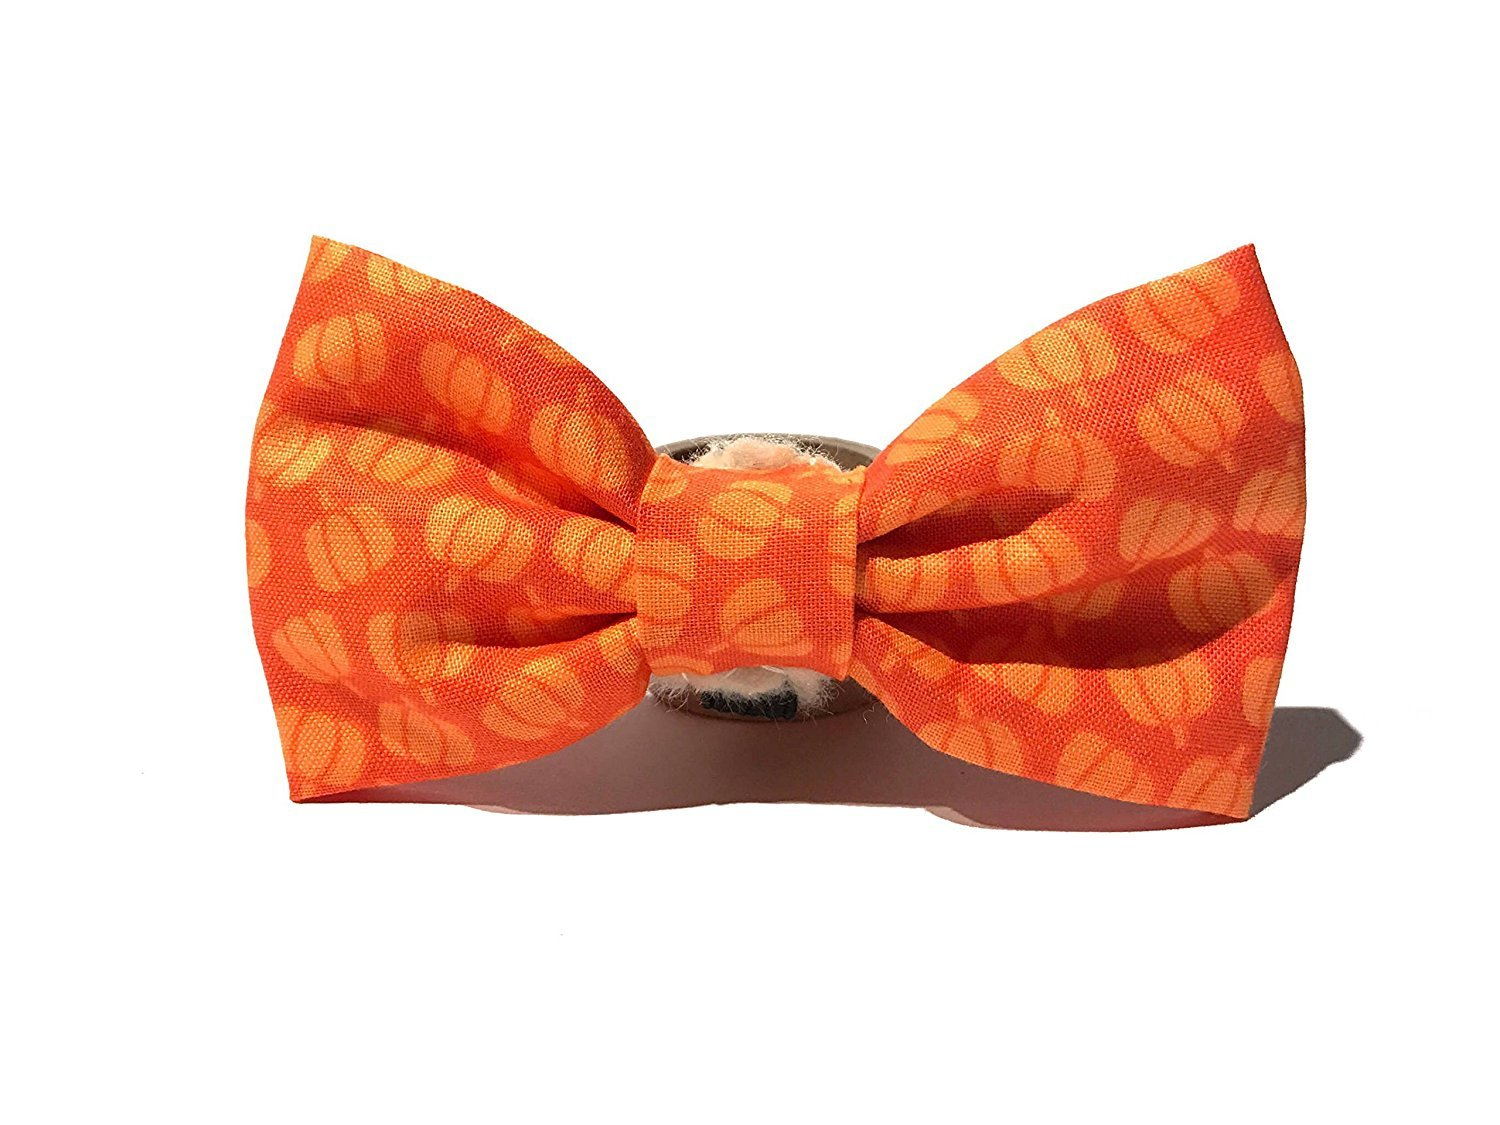 Very Vintage Designs October Time - Orange Pumpkin Gourd Halloween Thanksgiving Fall Autumn Masculine Hand-crafted Bow Tie for a Dog or Cat Collar - Bowtie only - Handmade in the USA